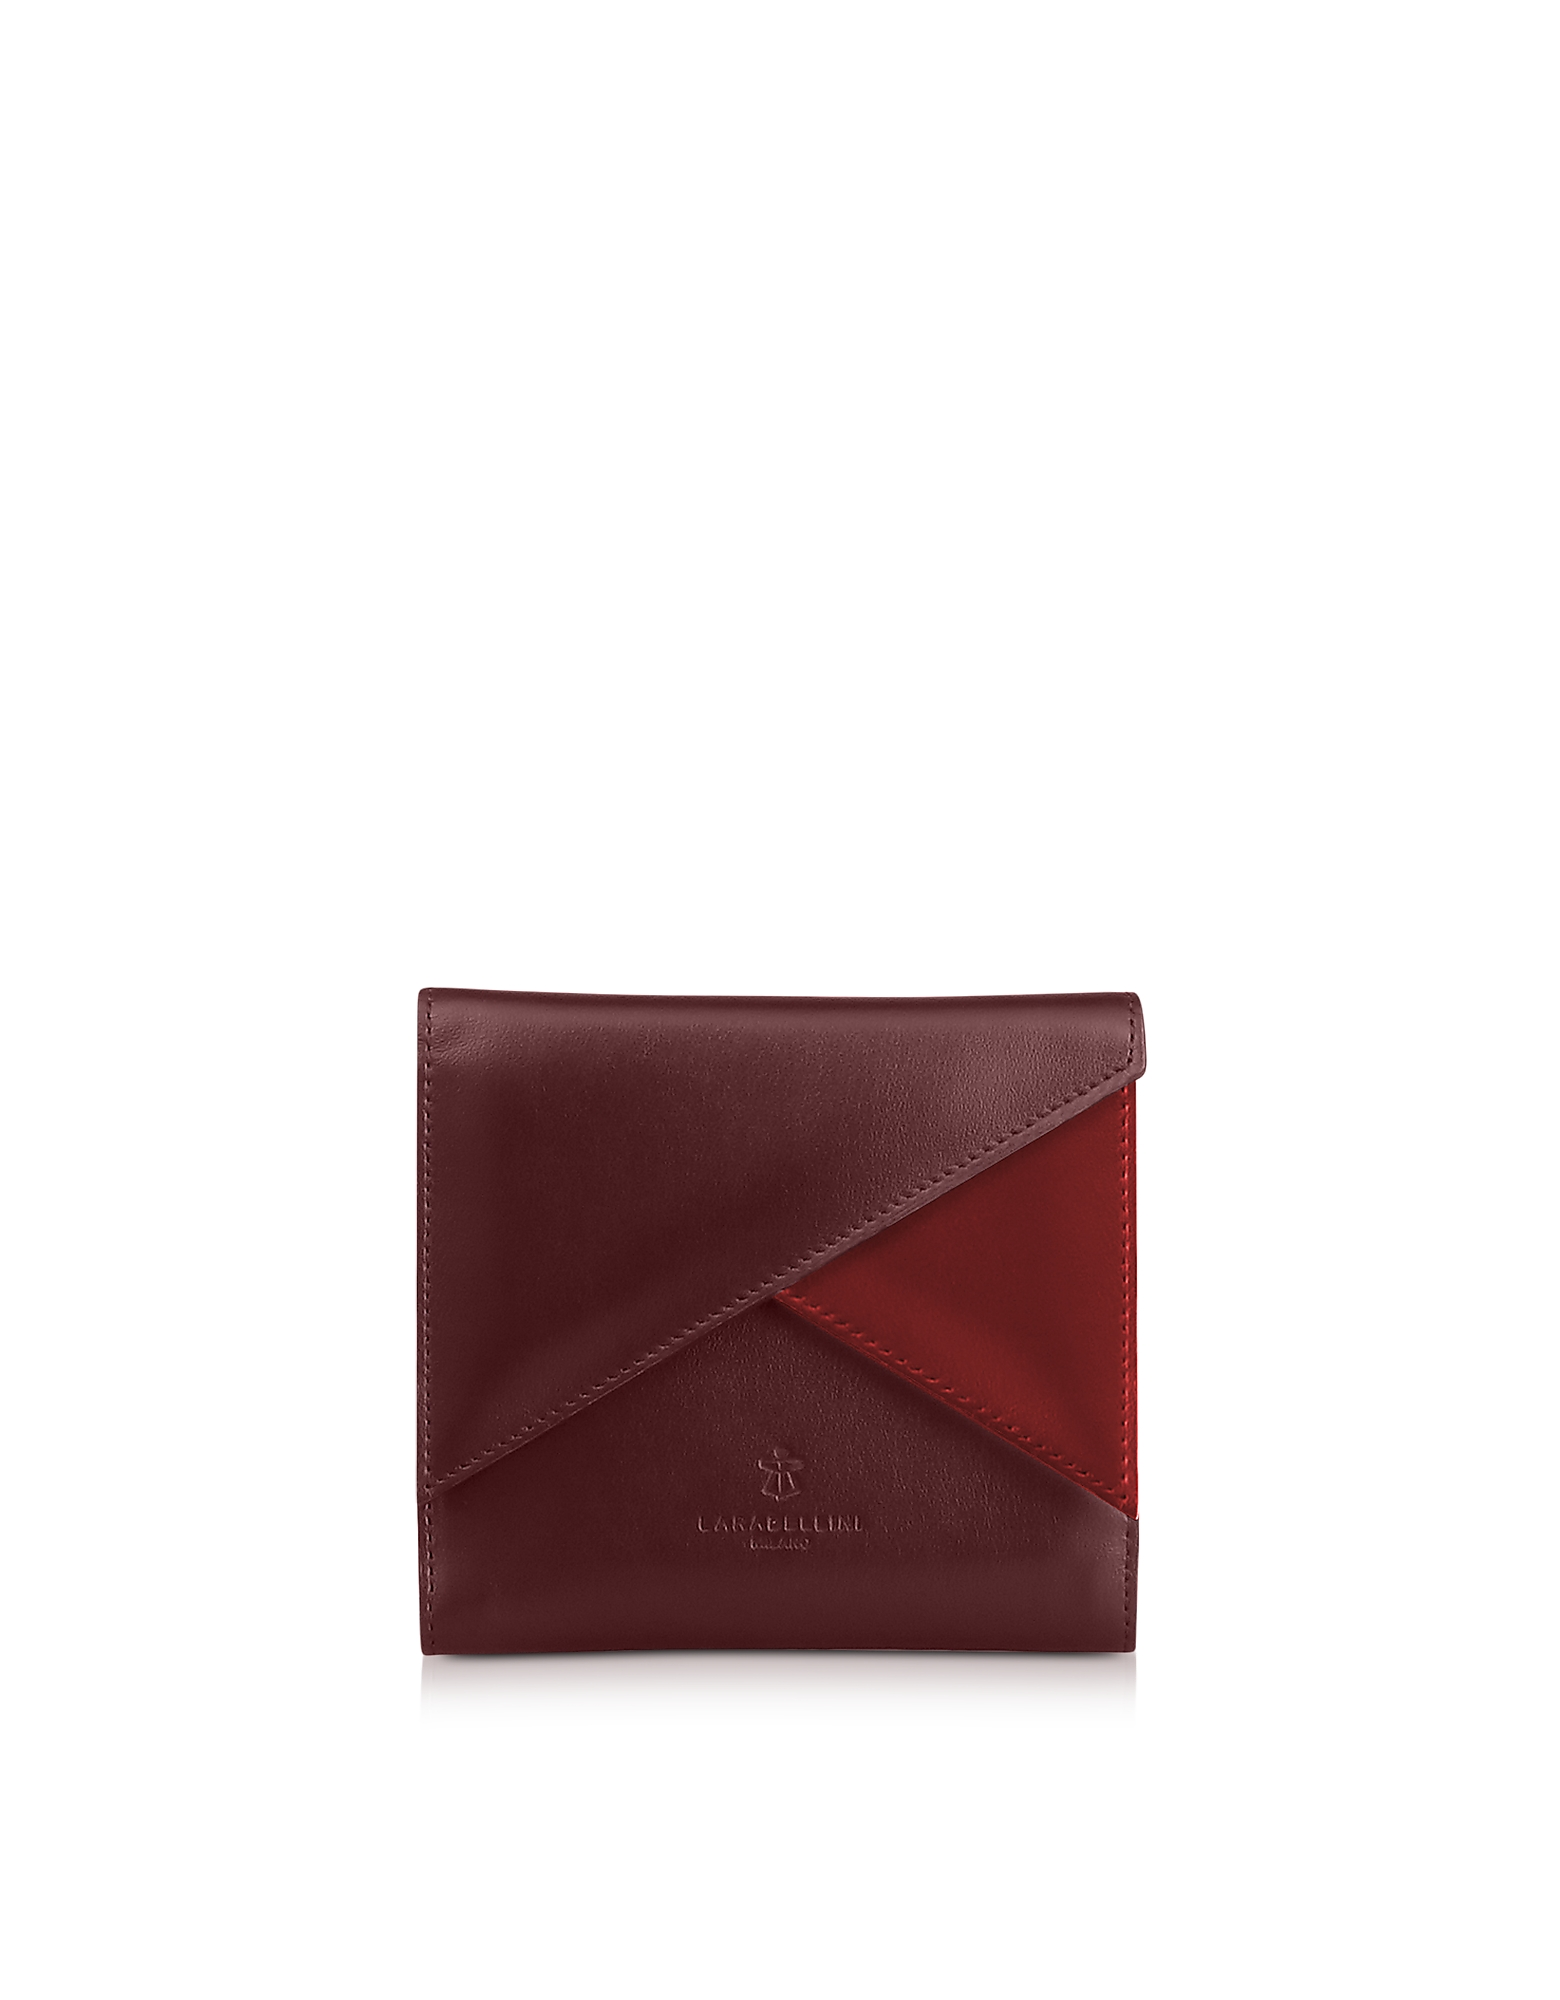 Two Tone Leather Squared Vela Wallet